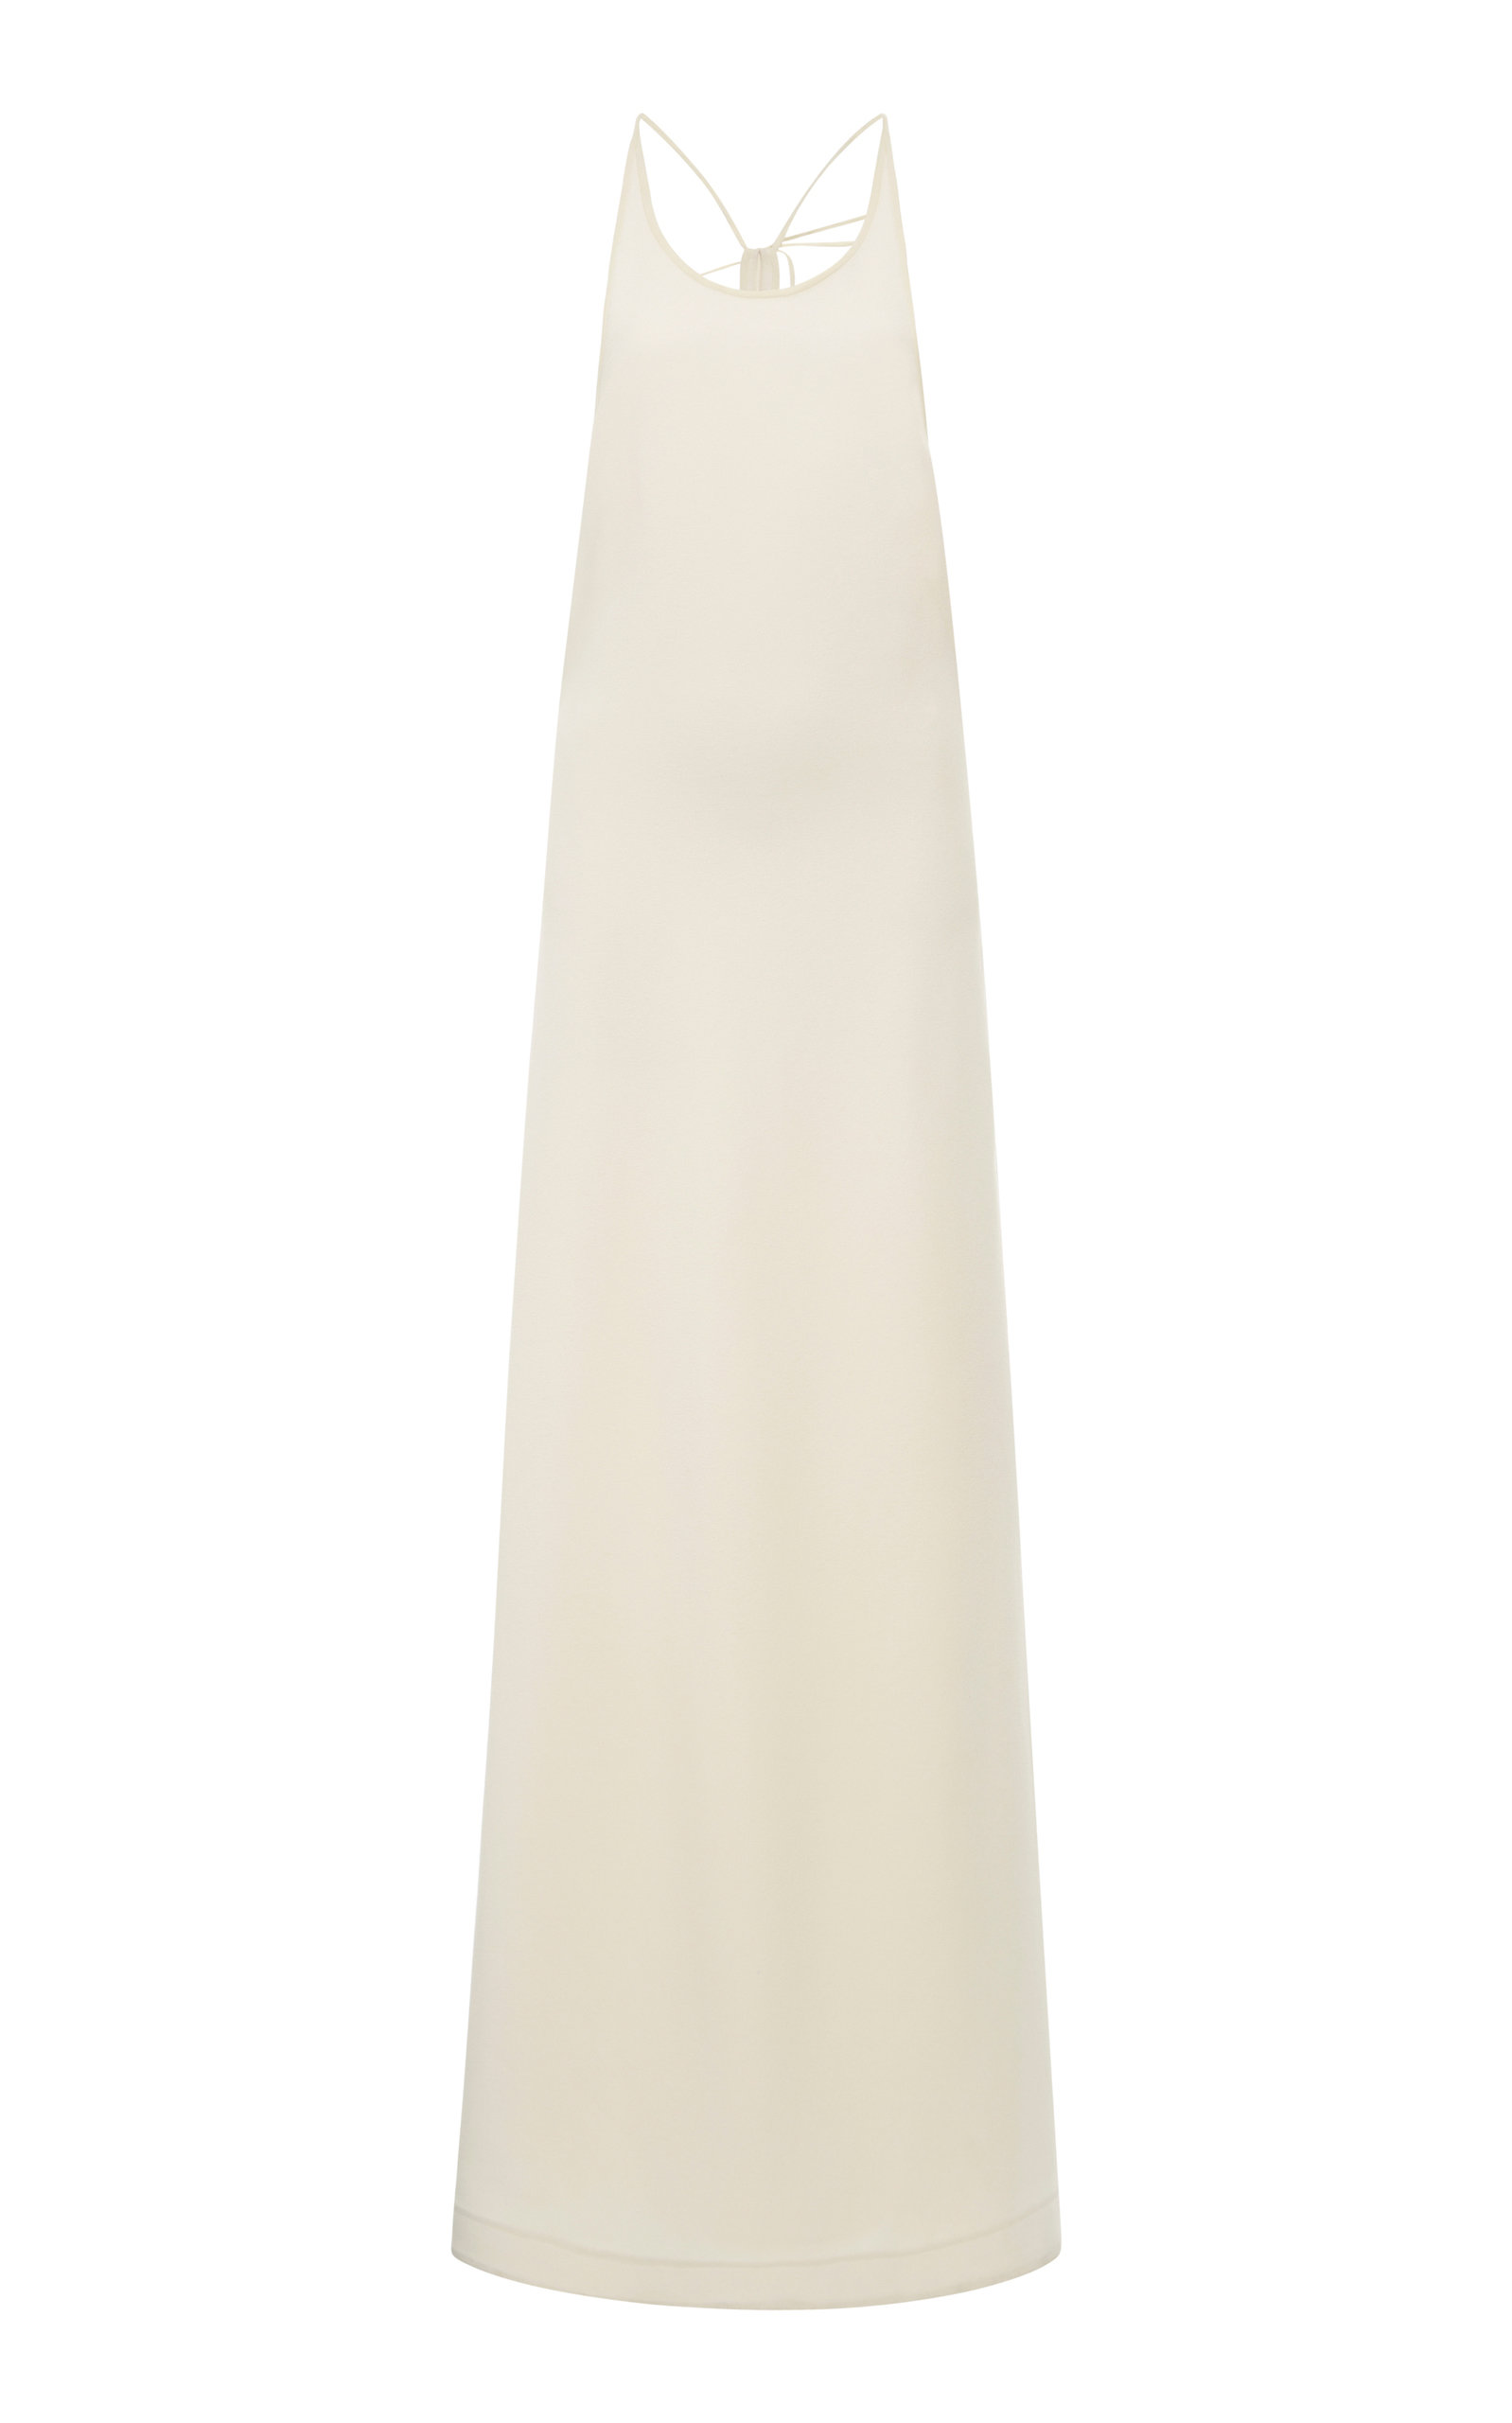 Buy Jil Sander Strappy Stretch-Satin Halter Dress online, shop Jil Sander at the best price